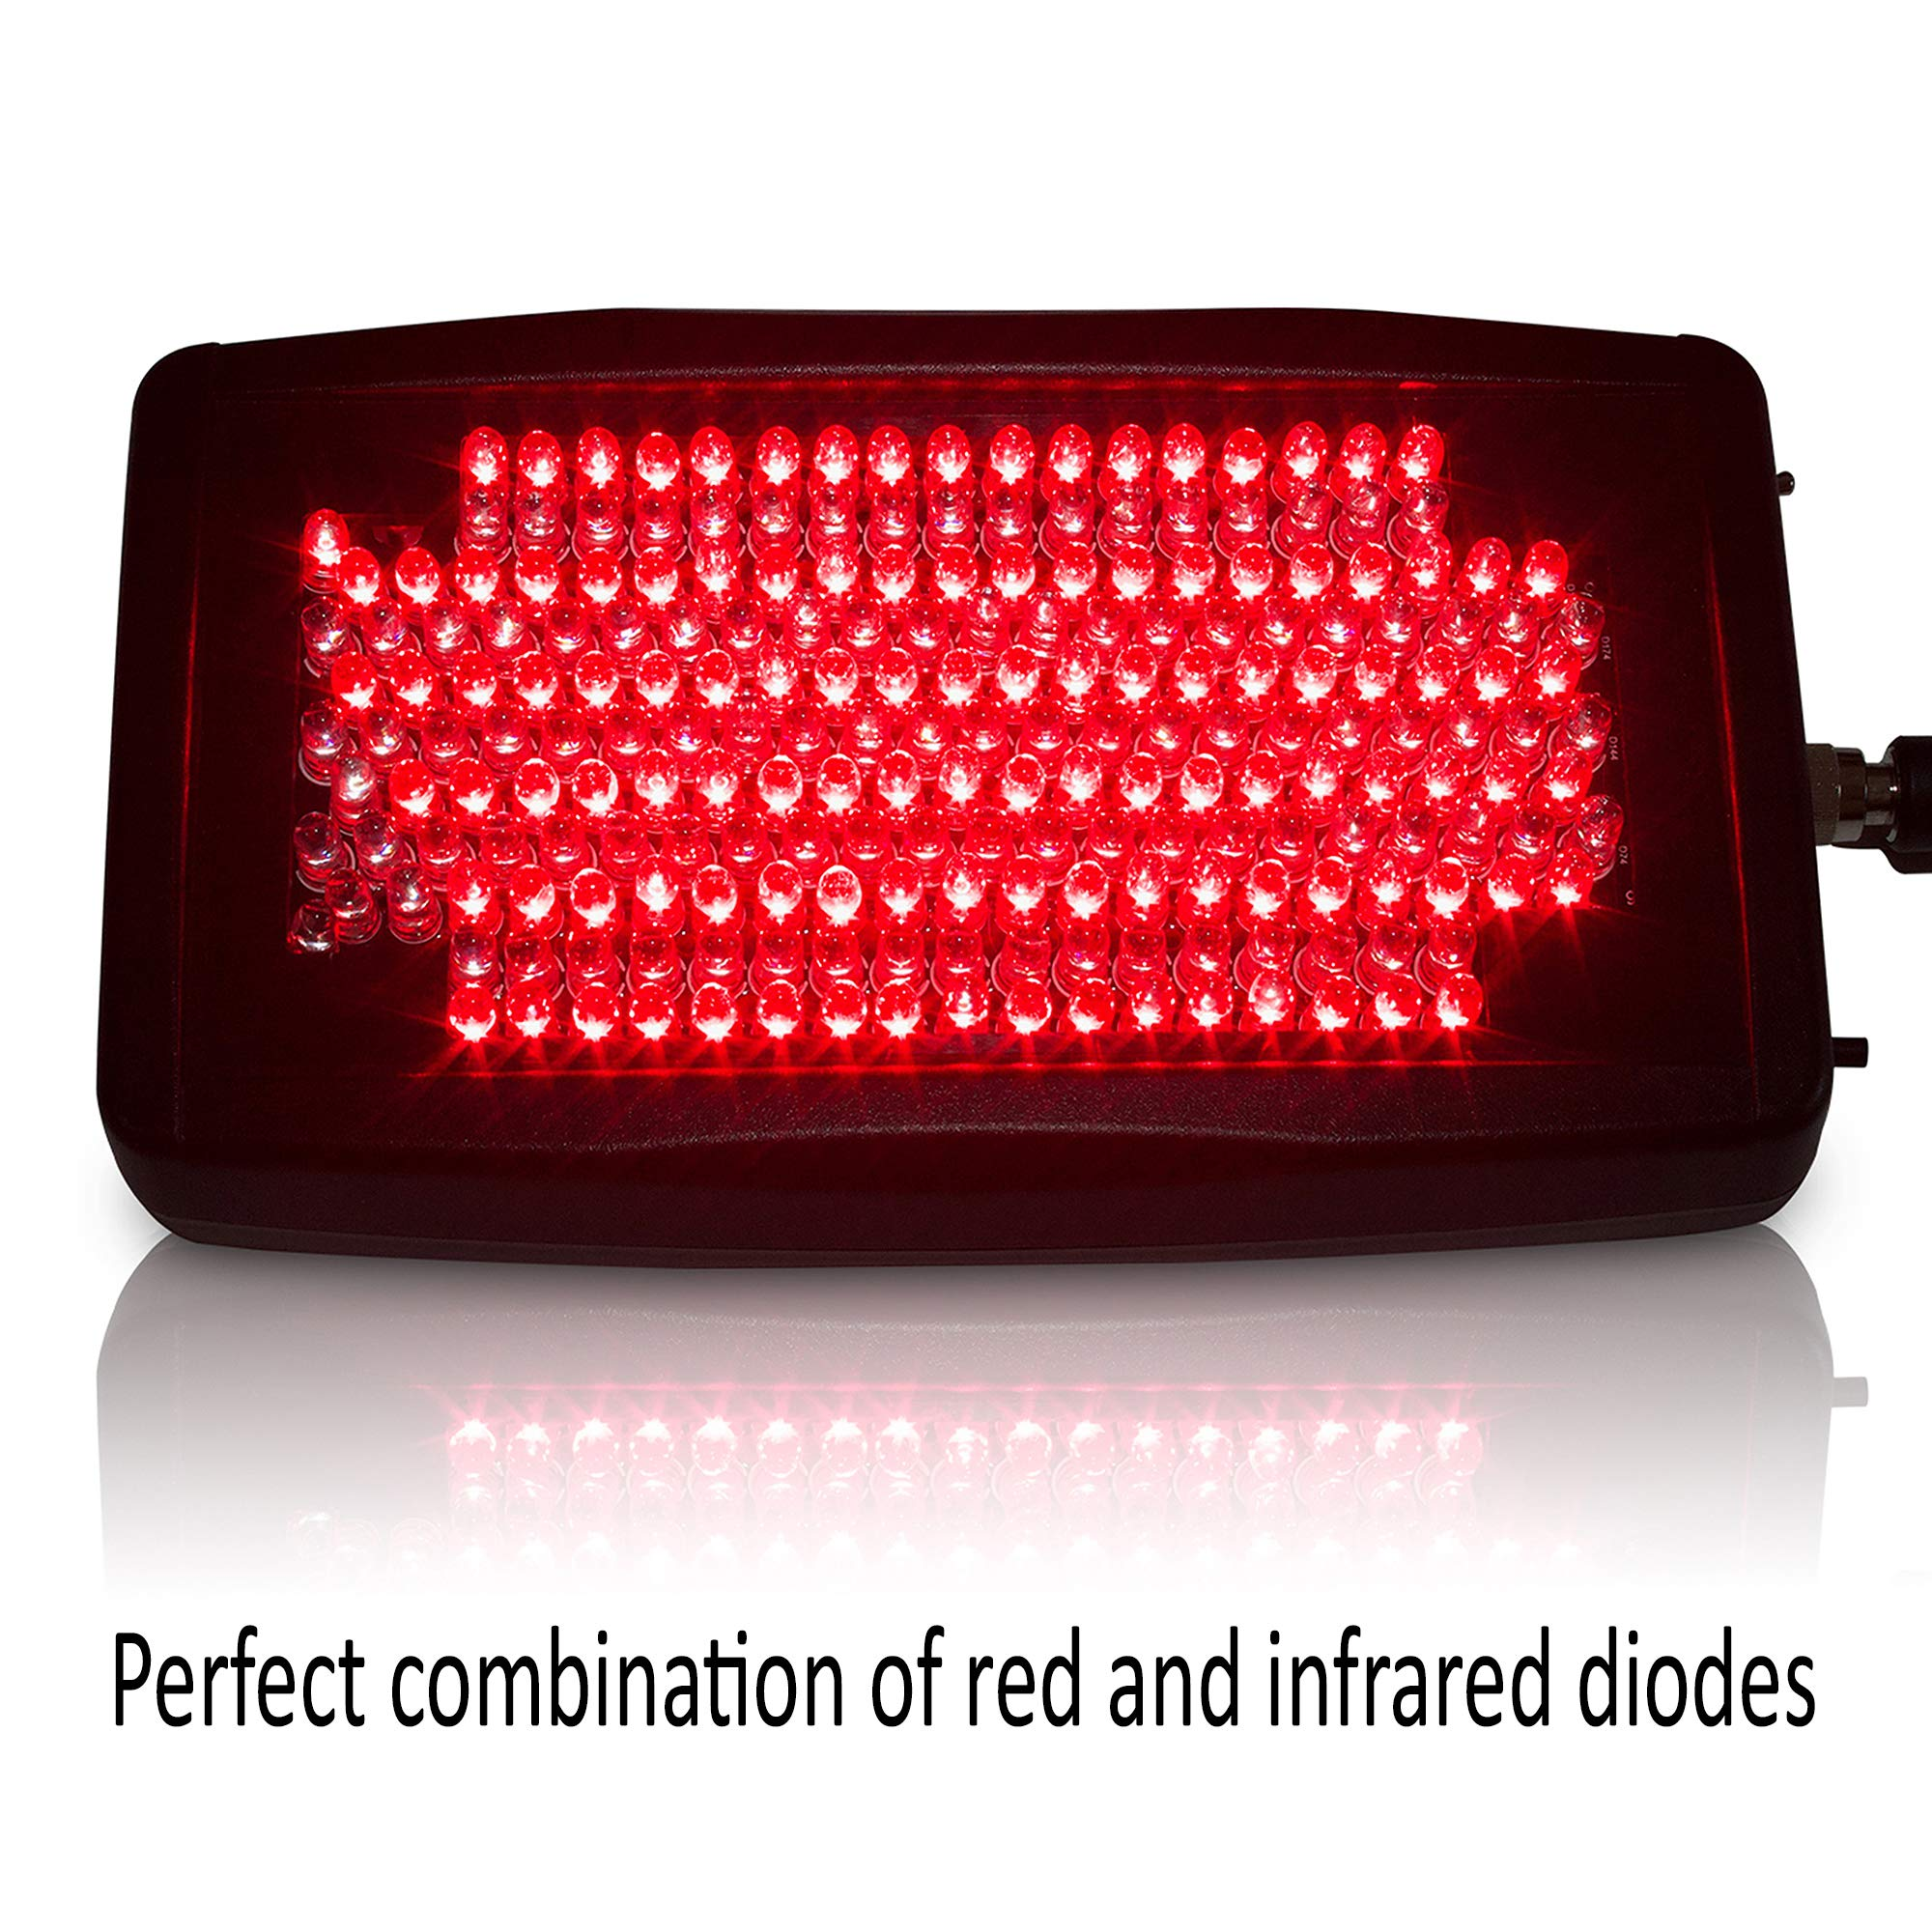 The LightDoctor Near Infrared Red and LED Light Therapy Relief for Neck Pain, Back Pain and Arthritis with Safety Timer & Custom Carrying Case, FDA Cleared by Light Doctor (Image #3)